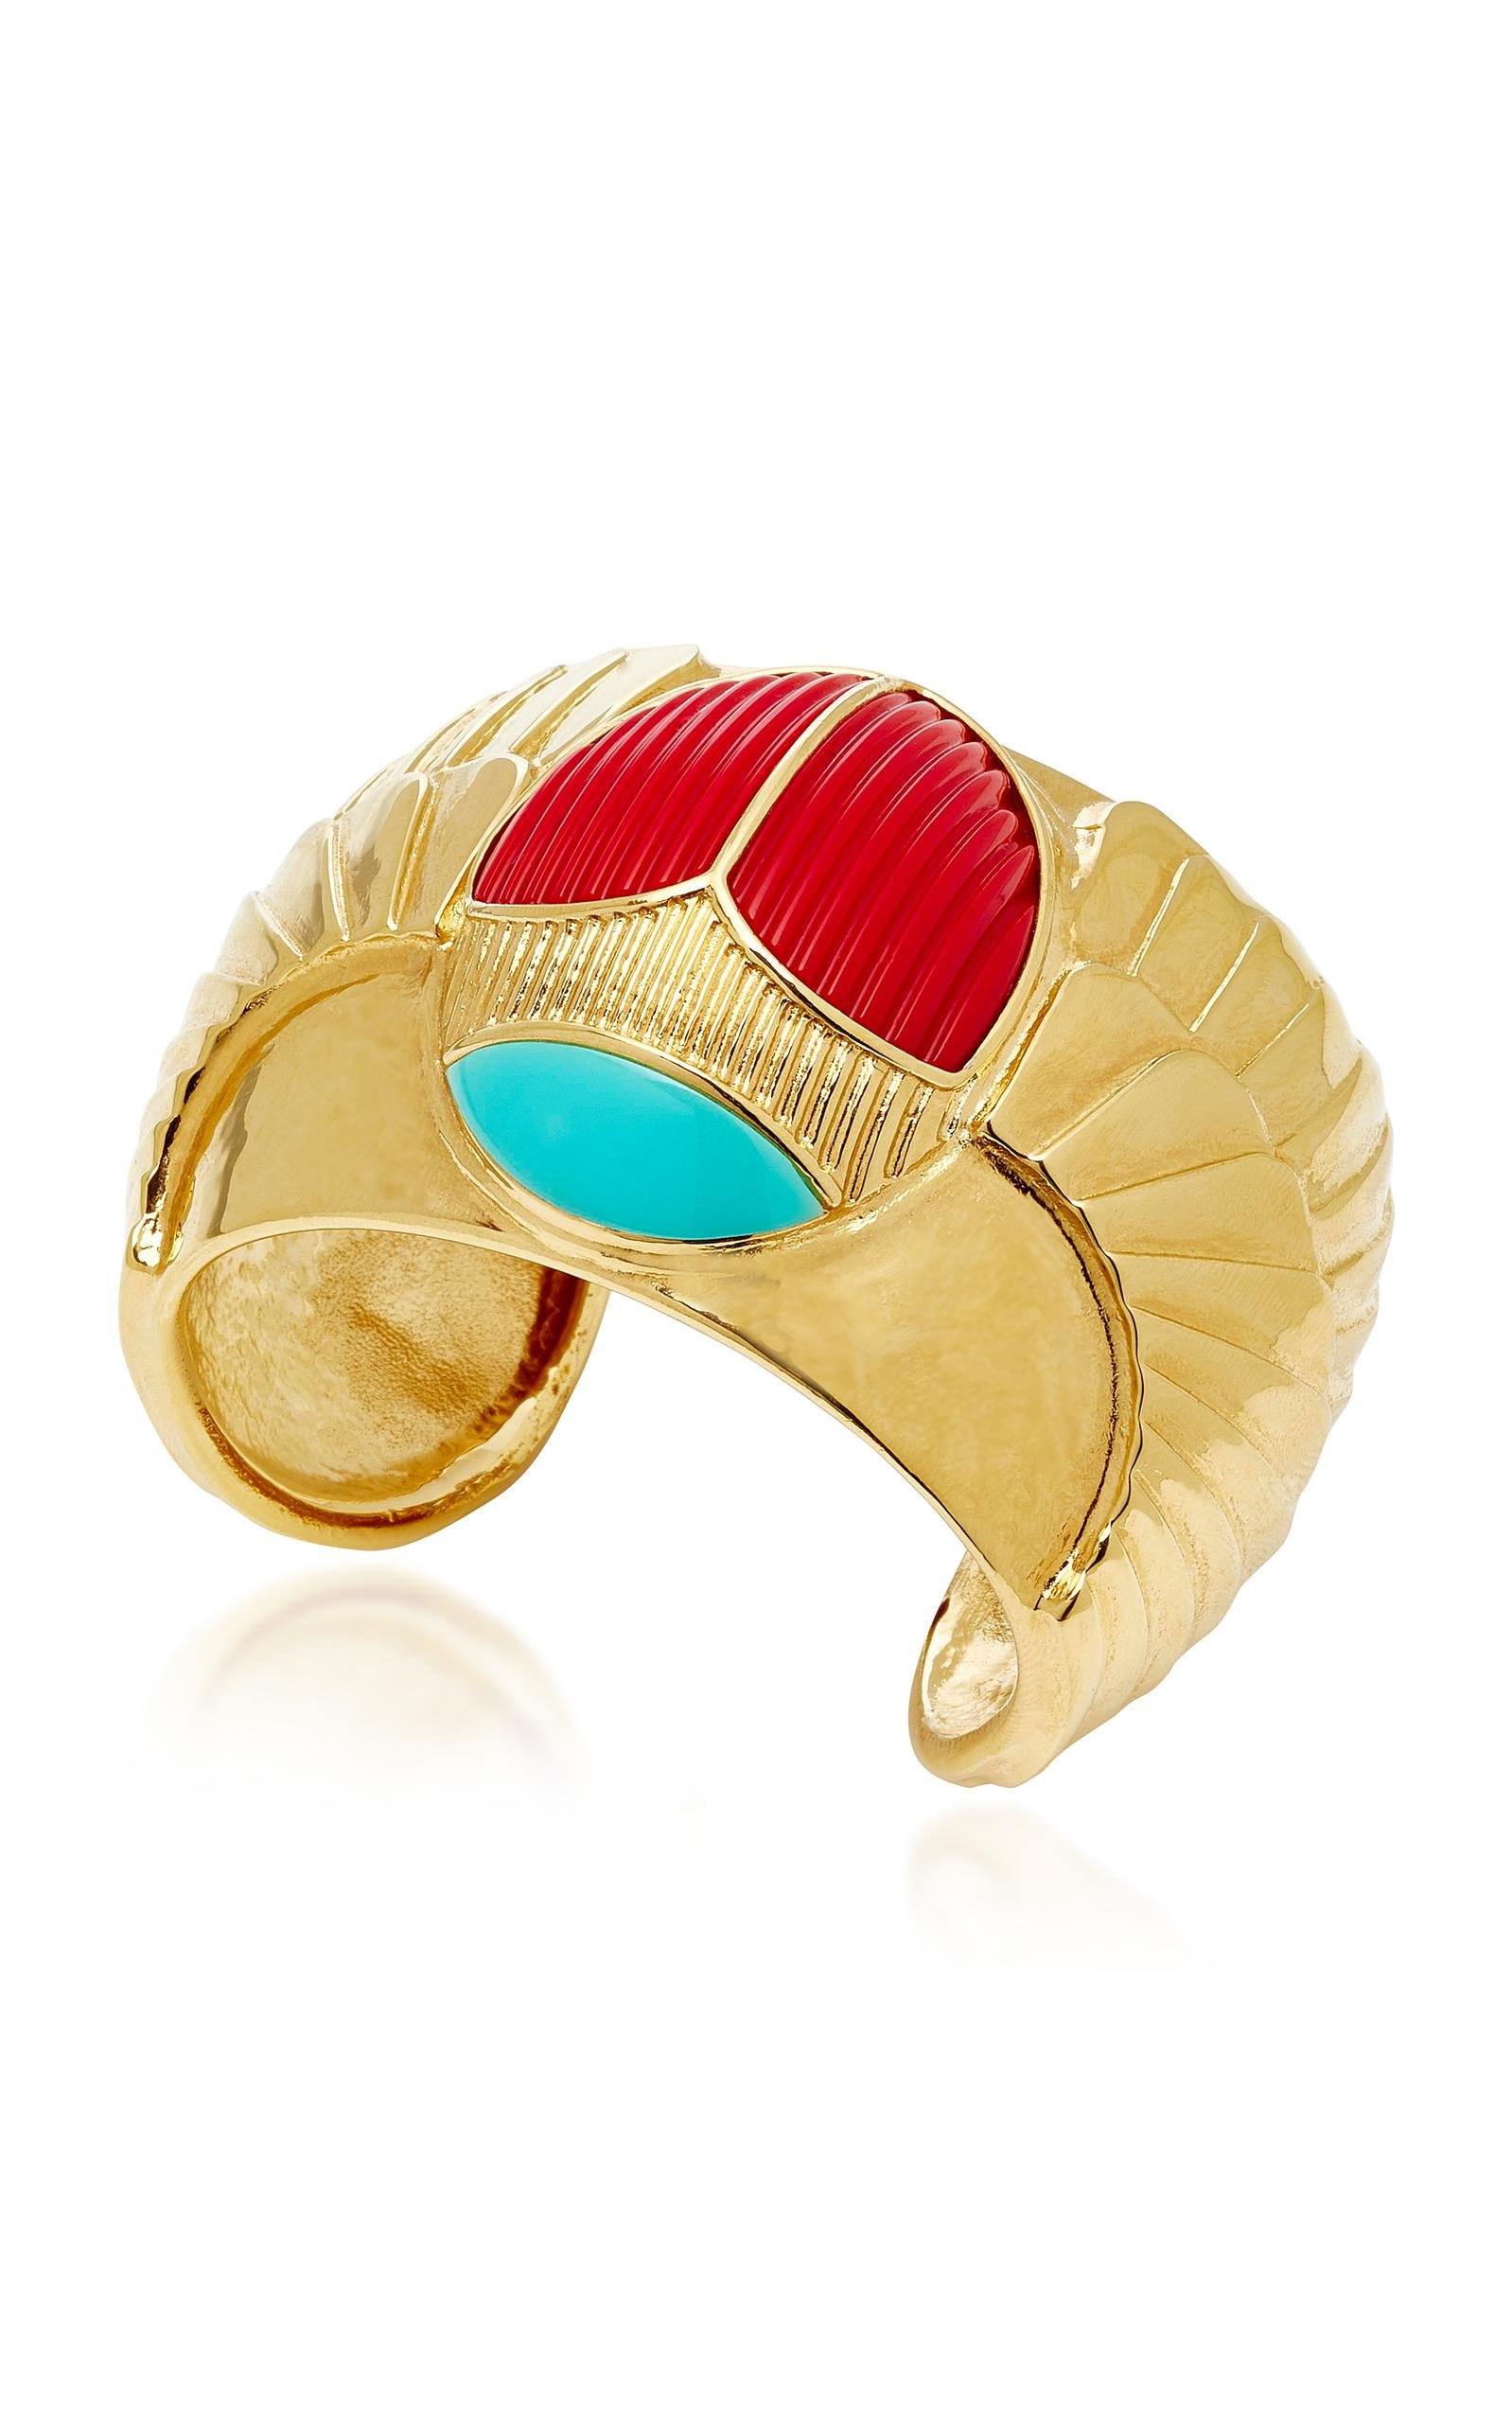 Aurélie Bidermann Elvira Ring in Turquoise Enamel, Coral Resin and 18K Gold-Plated Brass